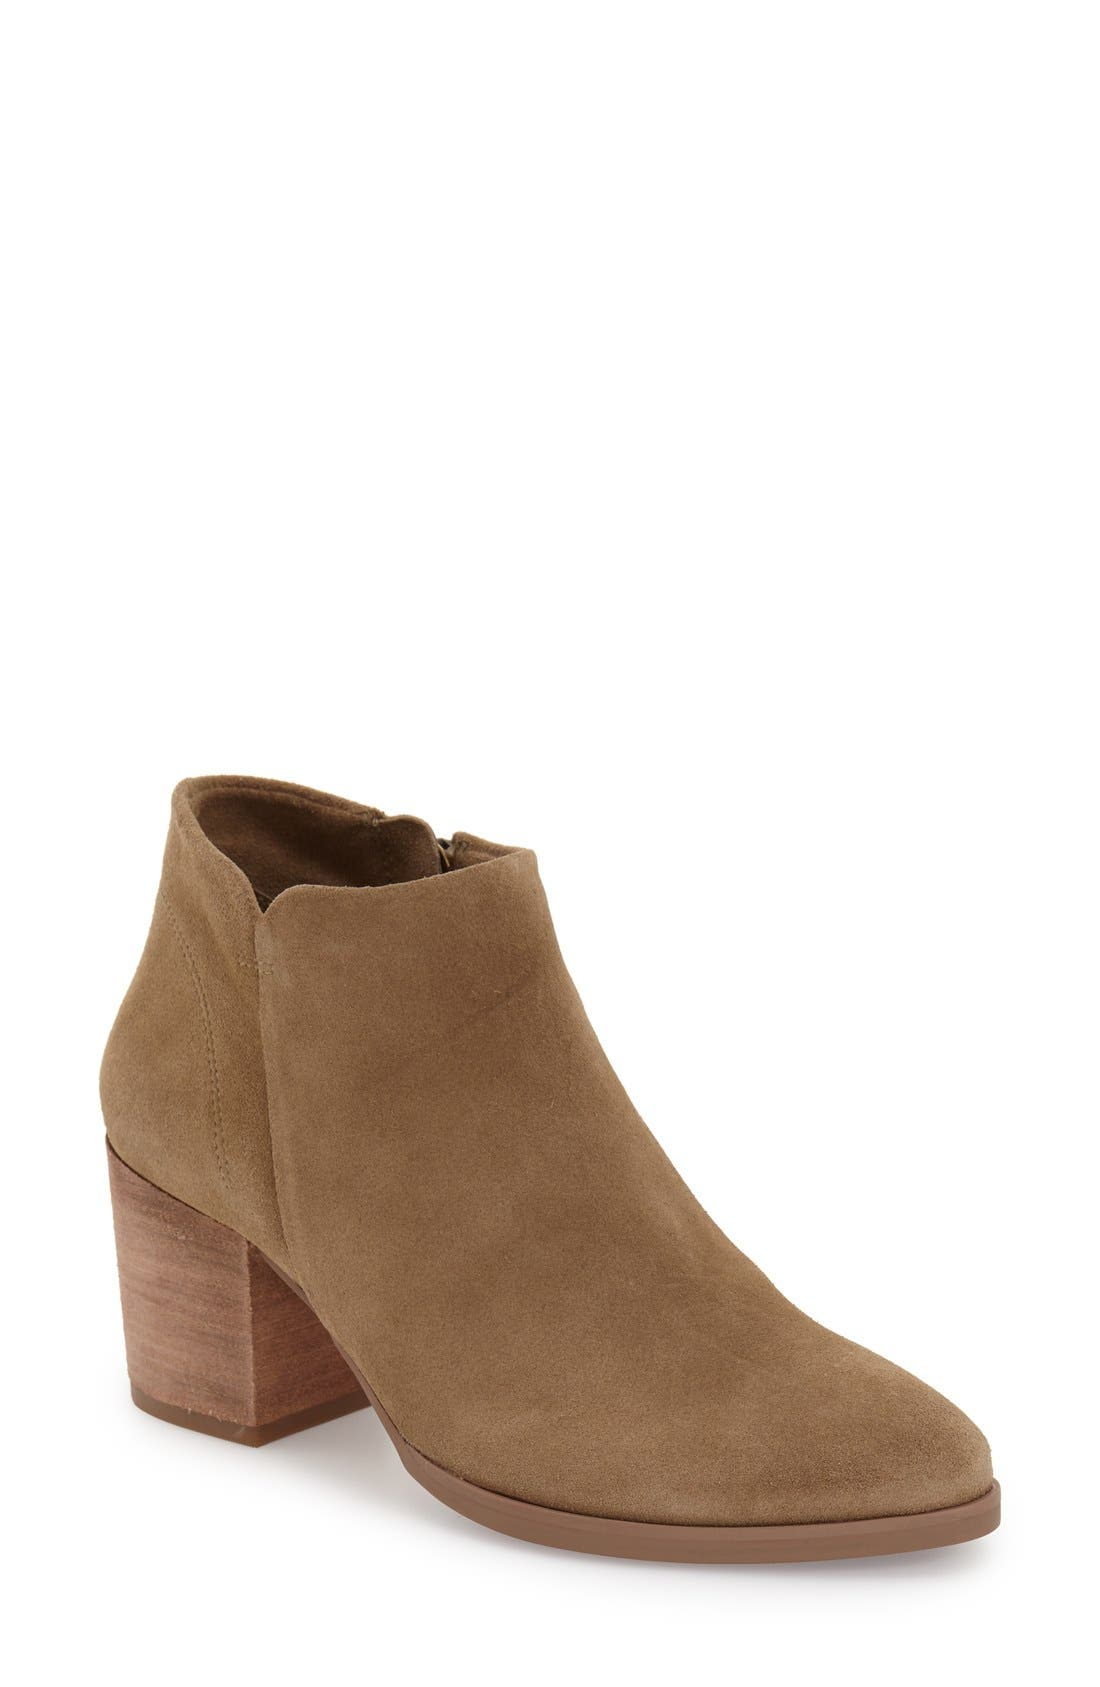 Alternate Image 1 Selected - Vince Camuto 'Malika' Bootie (Women)